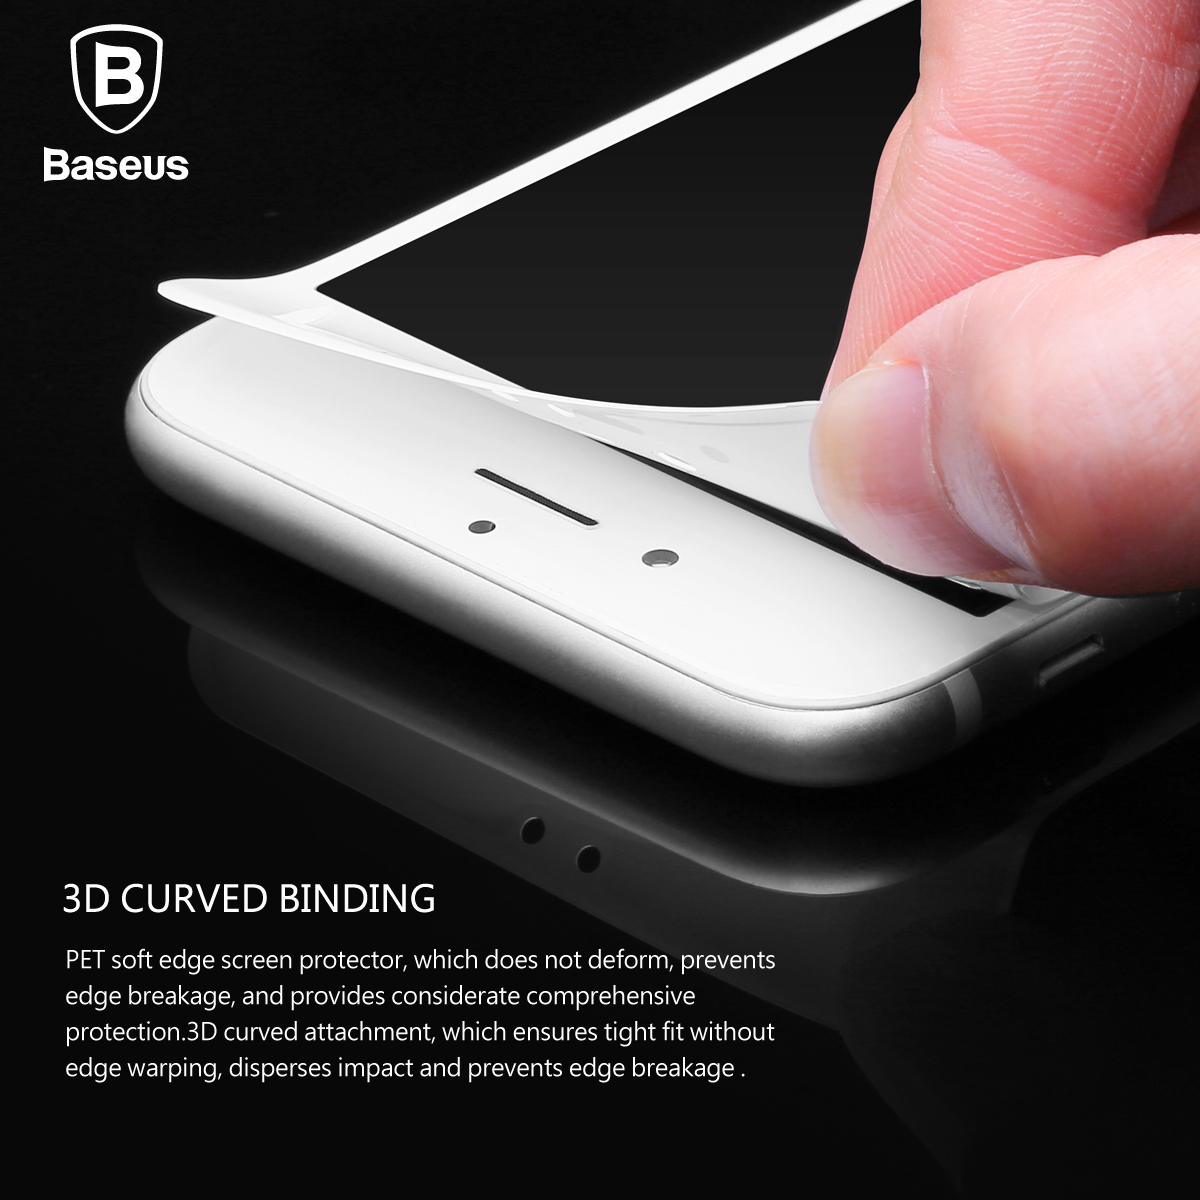 best sneakers 703a4 f17f5 US $3.87 37% OFF|Baseus 0.23MM Screen Protector Tempered Glass For iPhone 8  7 6 6s Plus Soft 3D Curved Full Cover Protective Toughened Glass Film-in ...